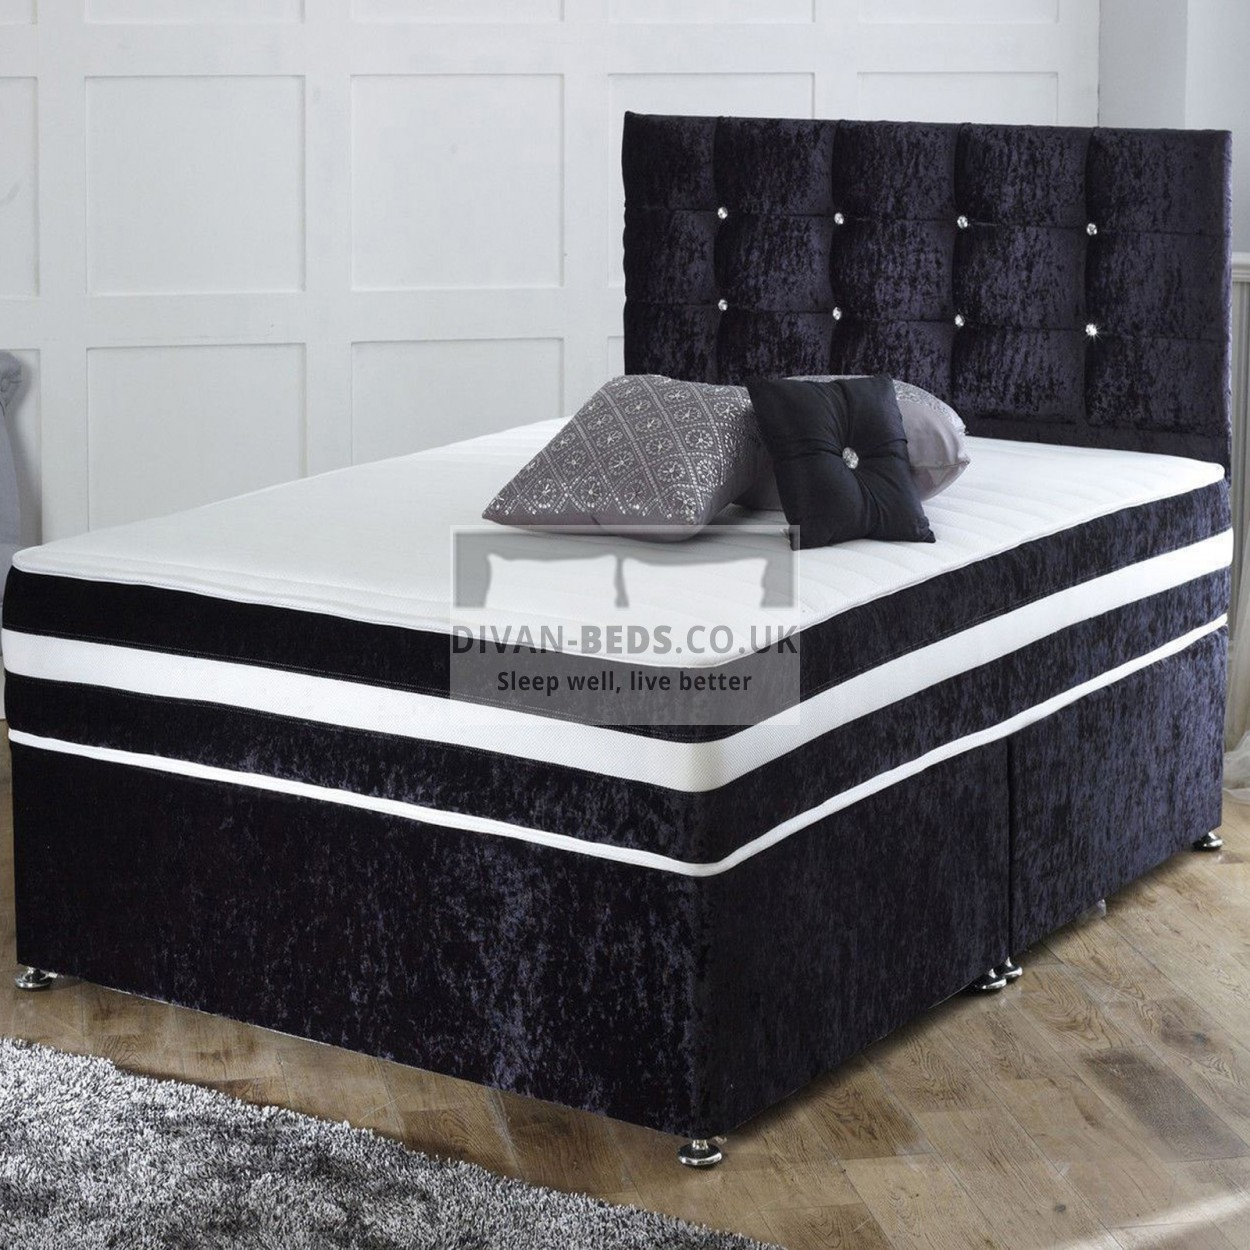 richard crushed velvet divan bed with orthopaedic spring